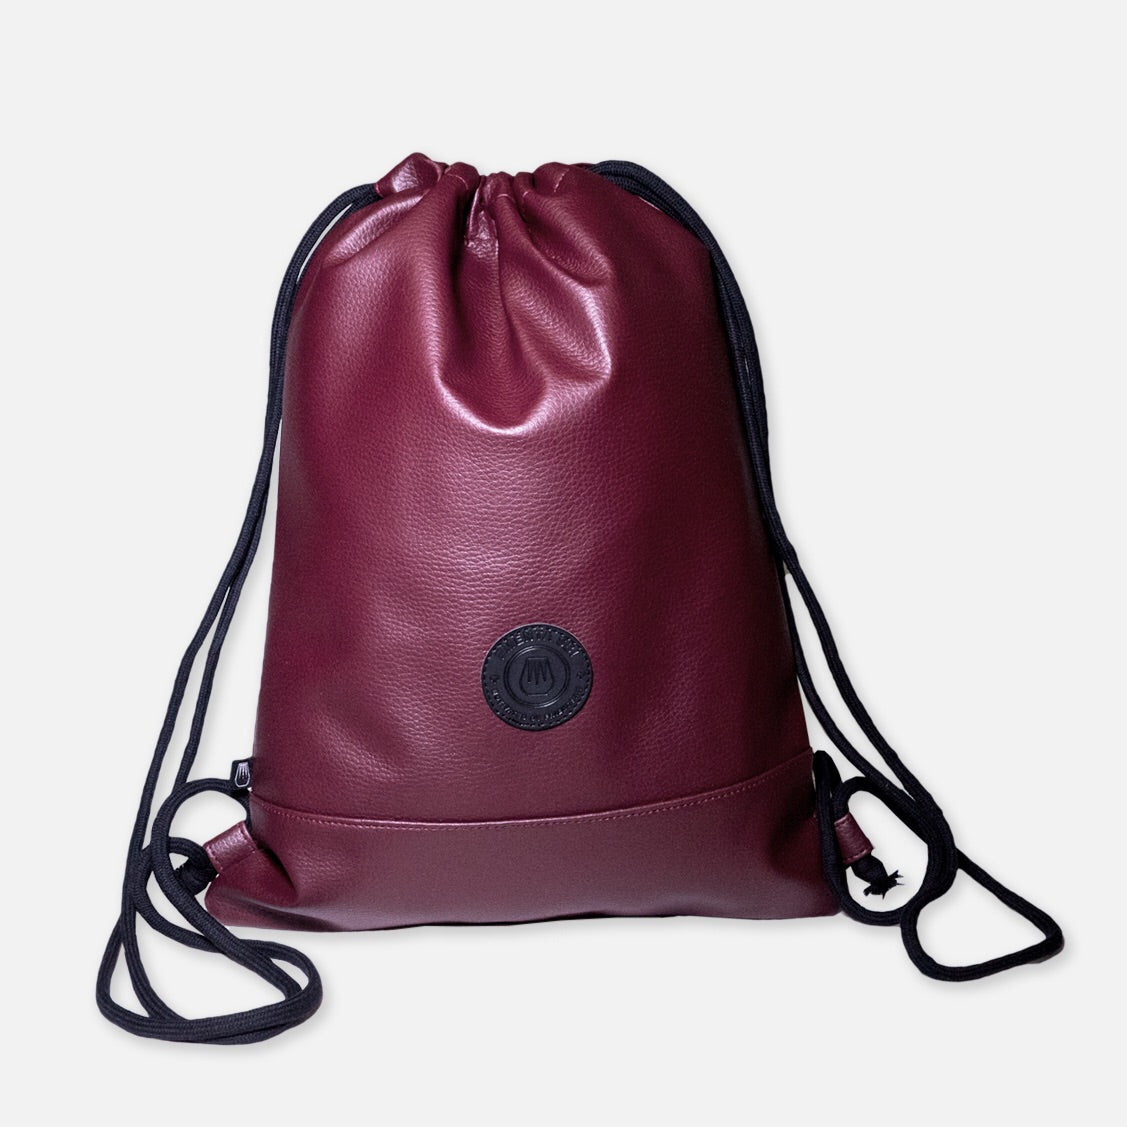 Maré Viva Dark Rouge Bag